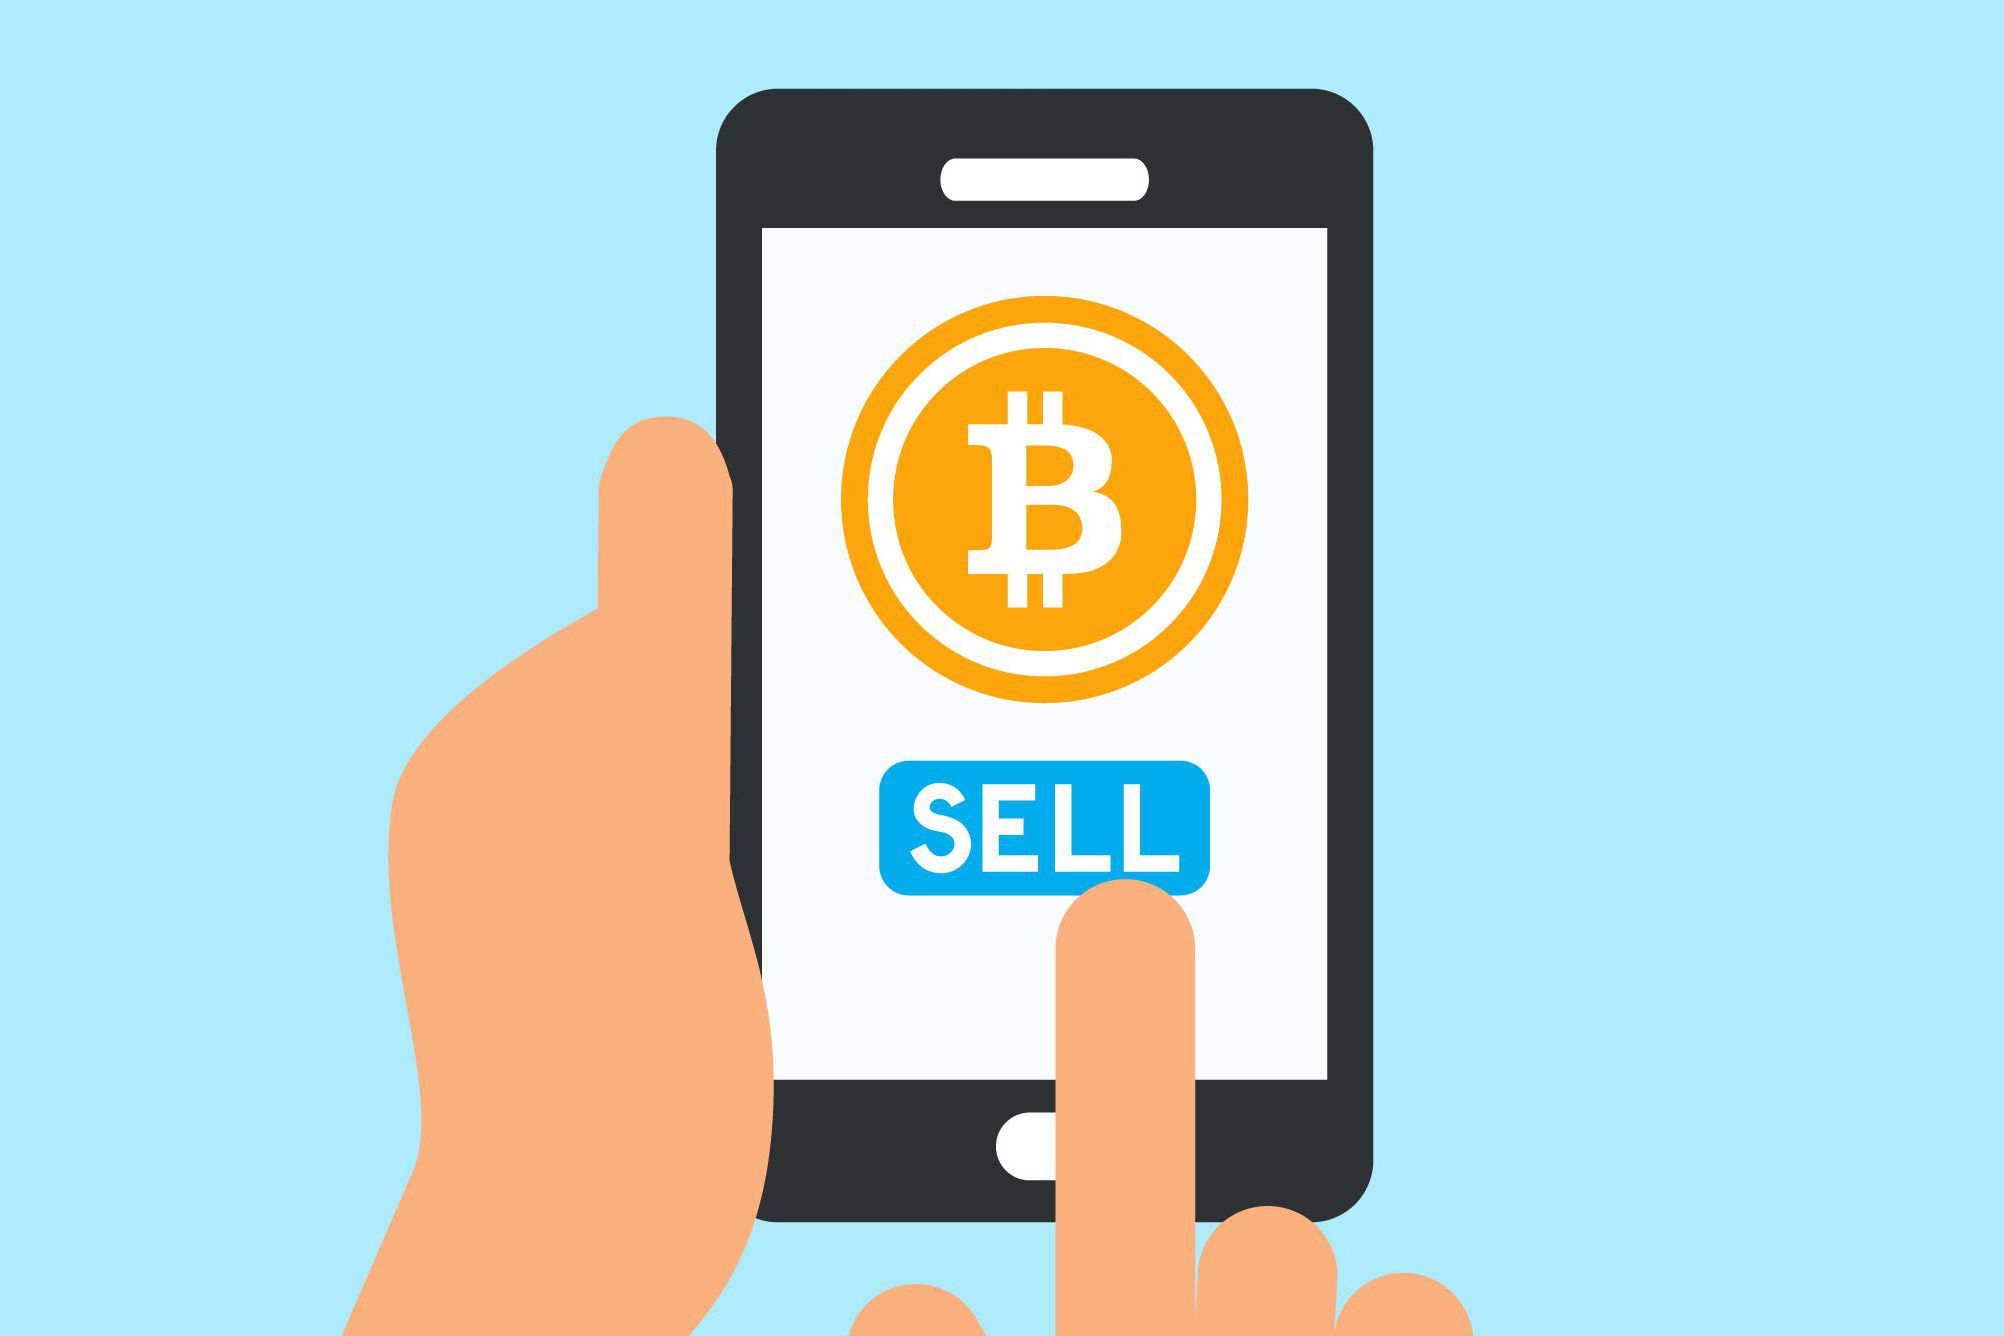 auto buy and sell cryptocurrency